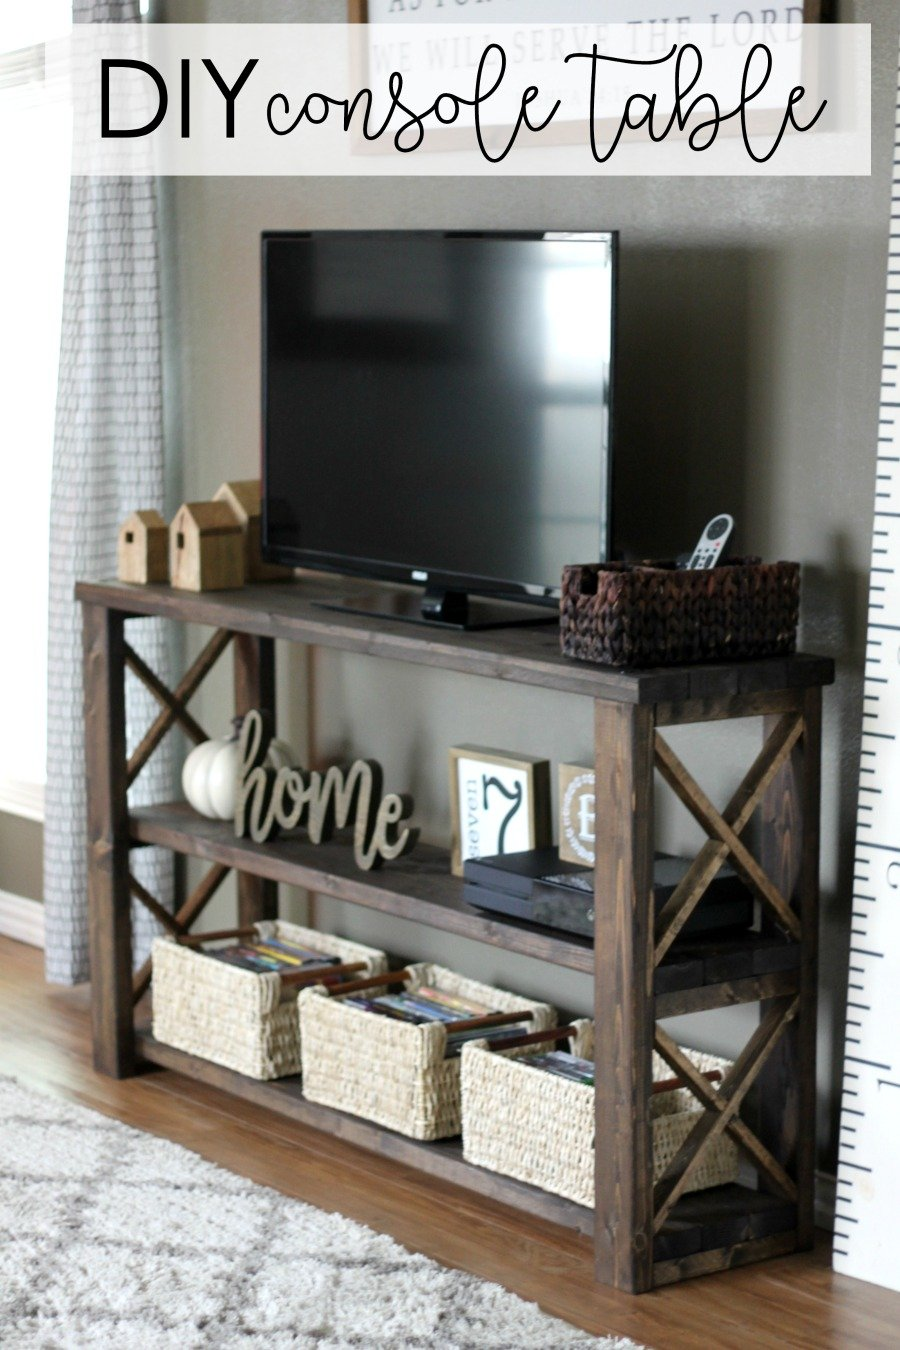 Console De Table How To Build A Diy Console Table For 50 Or Less